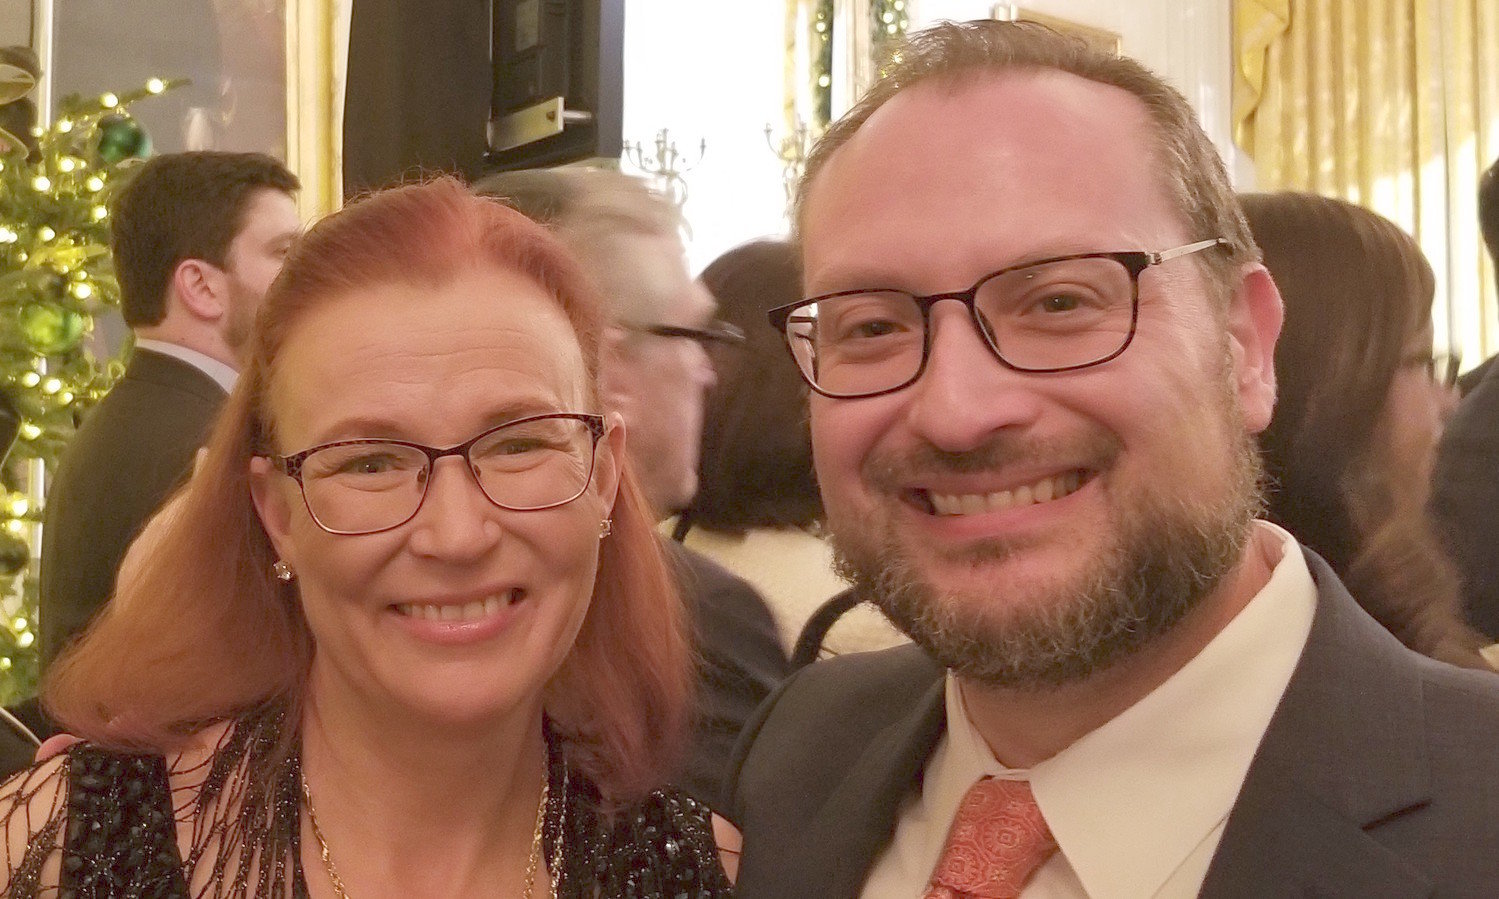 David Kaufman and his wife Julie, at the White House Chanukah Chanukah party in 2017. Kaufman leads Des Moines' largest synagogue, a Reform congregation.